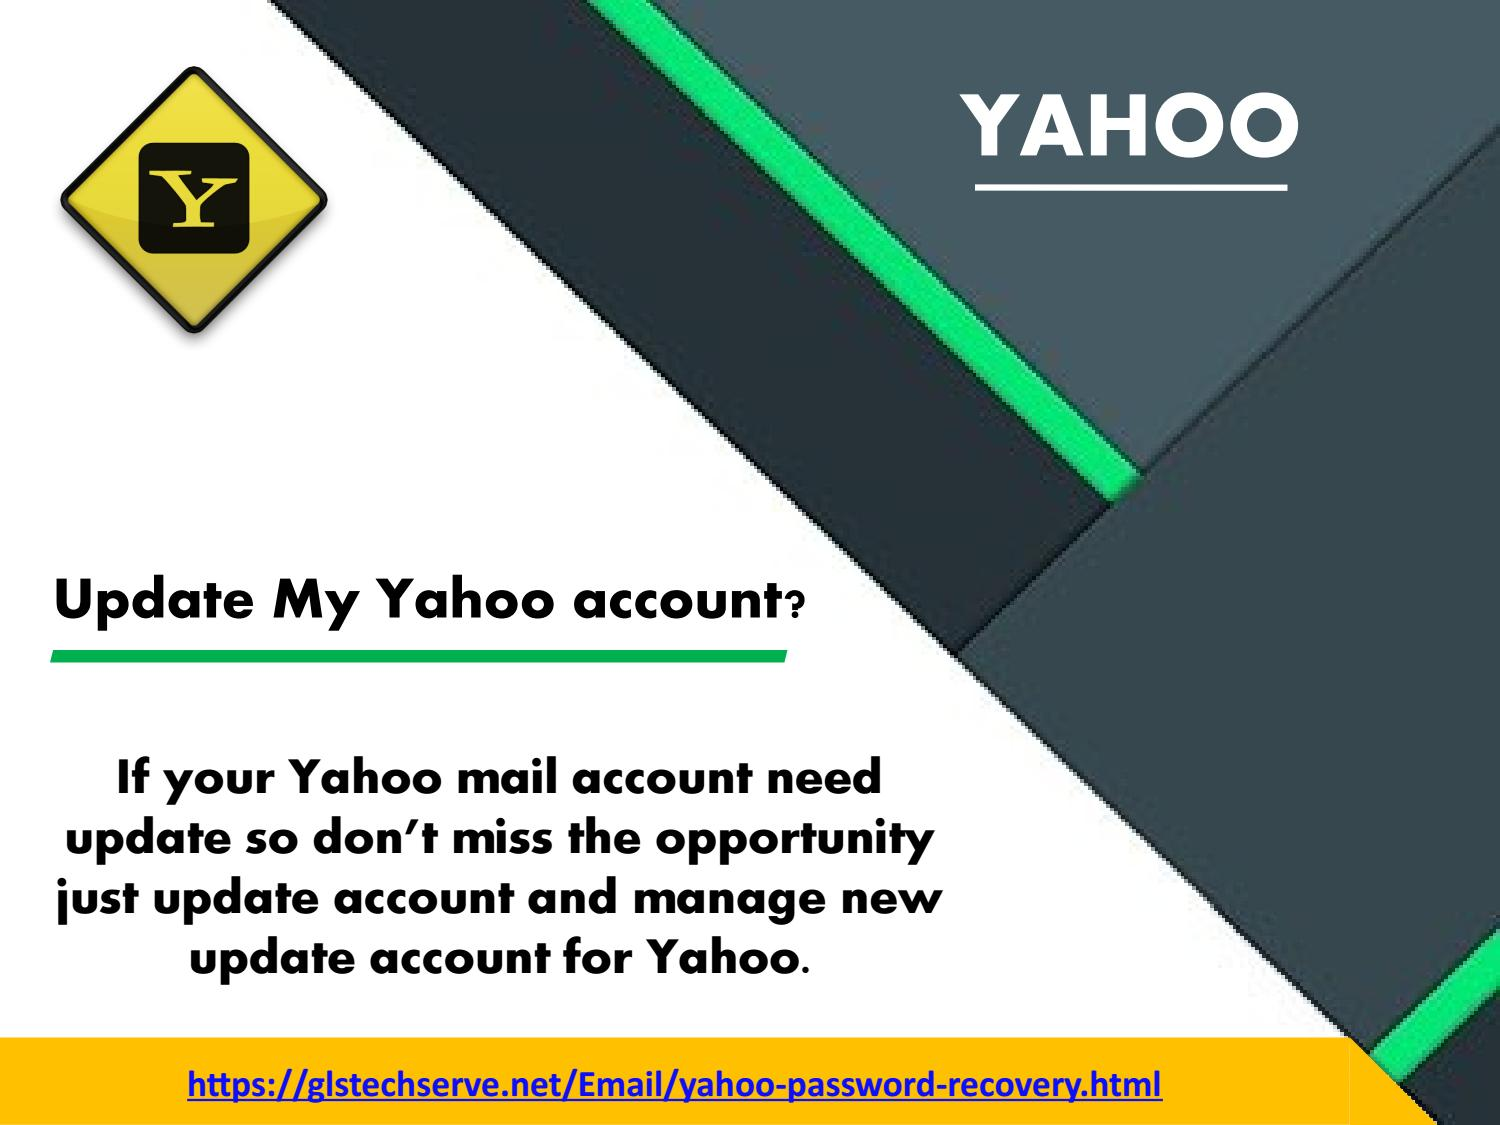 How can I update my Yahoo account?